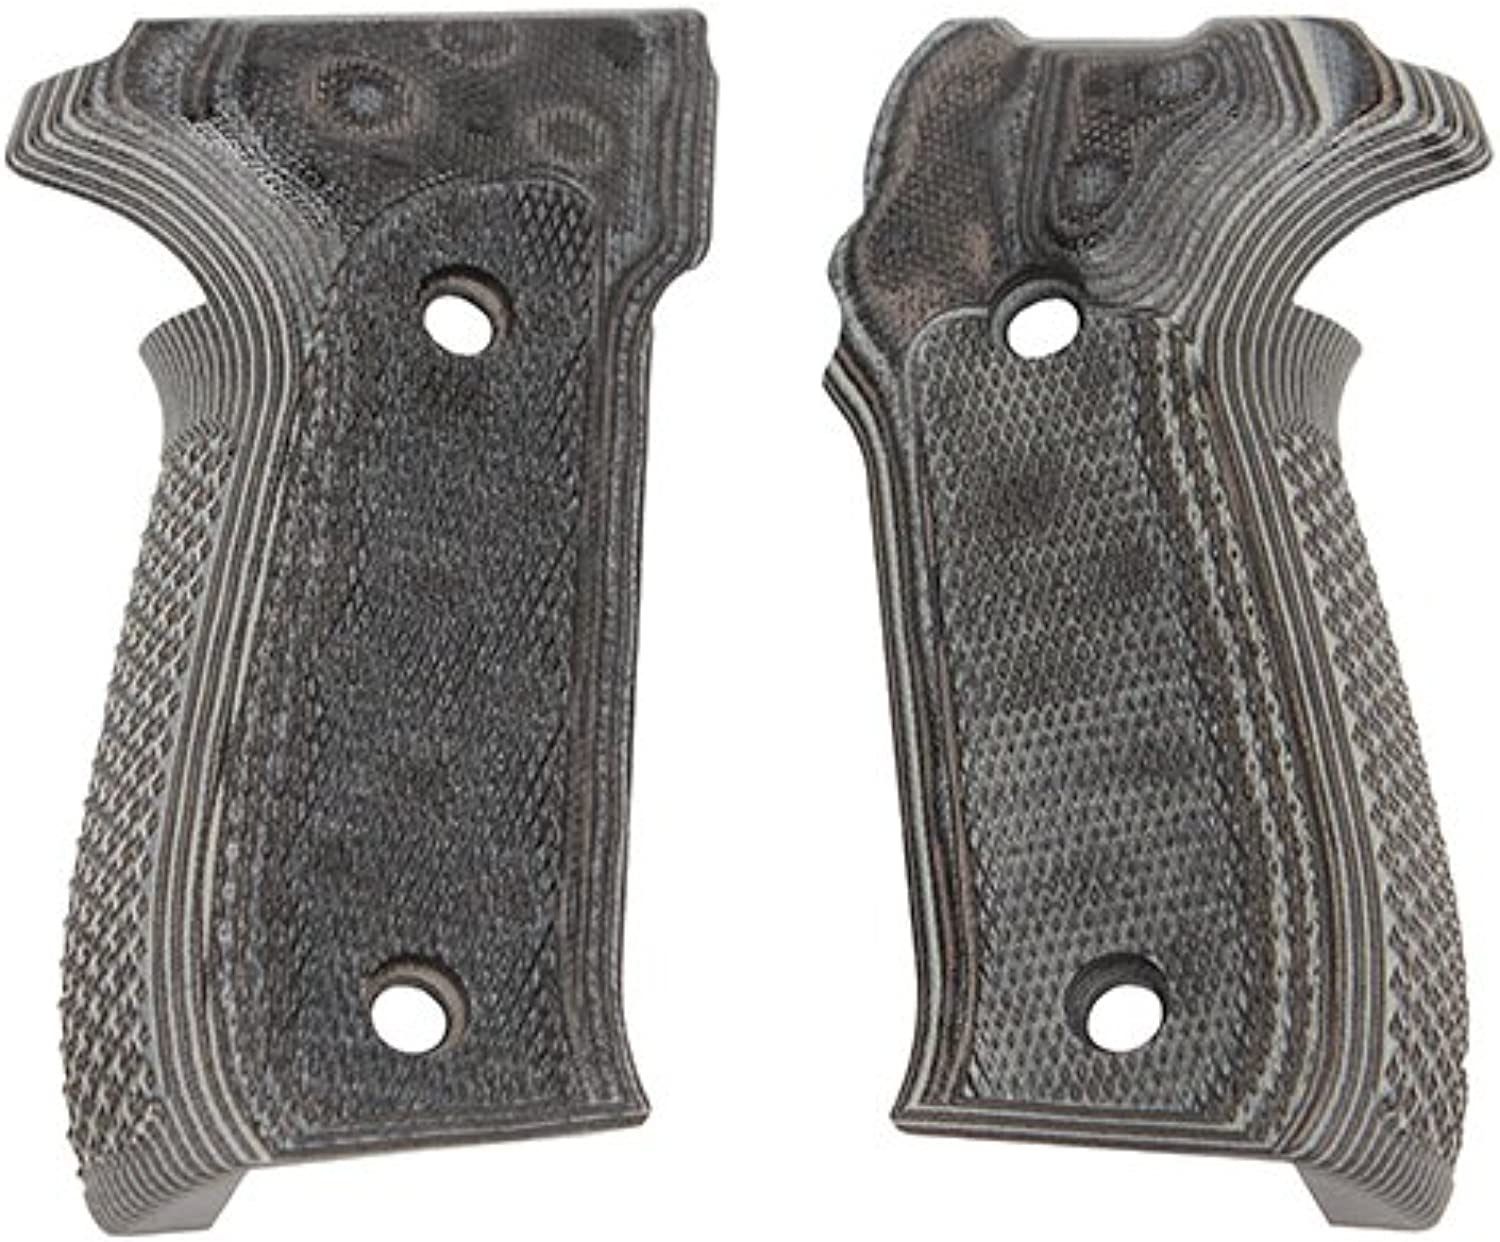 Hogue Sig P226 Grips (Checkered G-10 G-Mascus), Black Grey